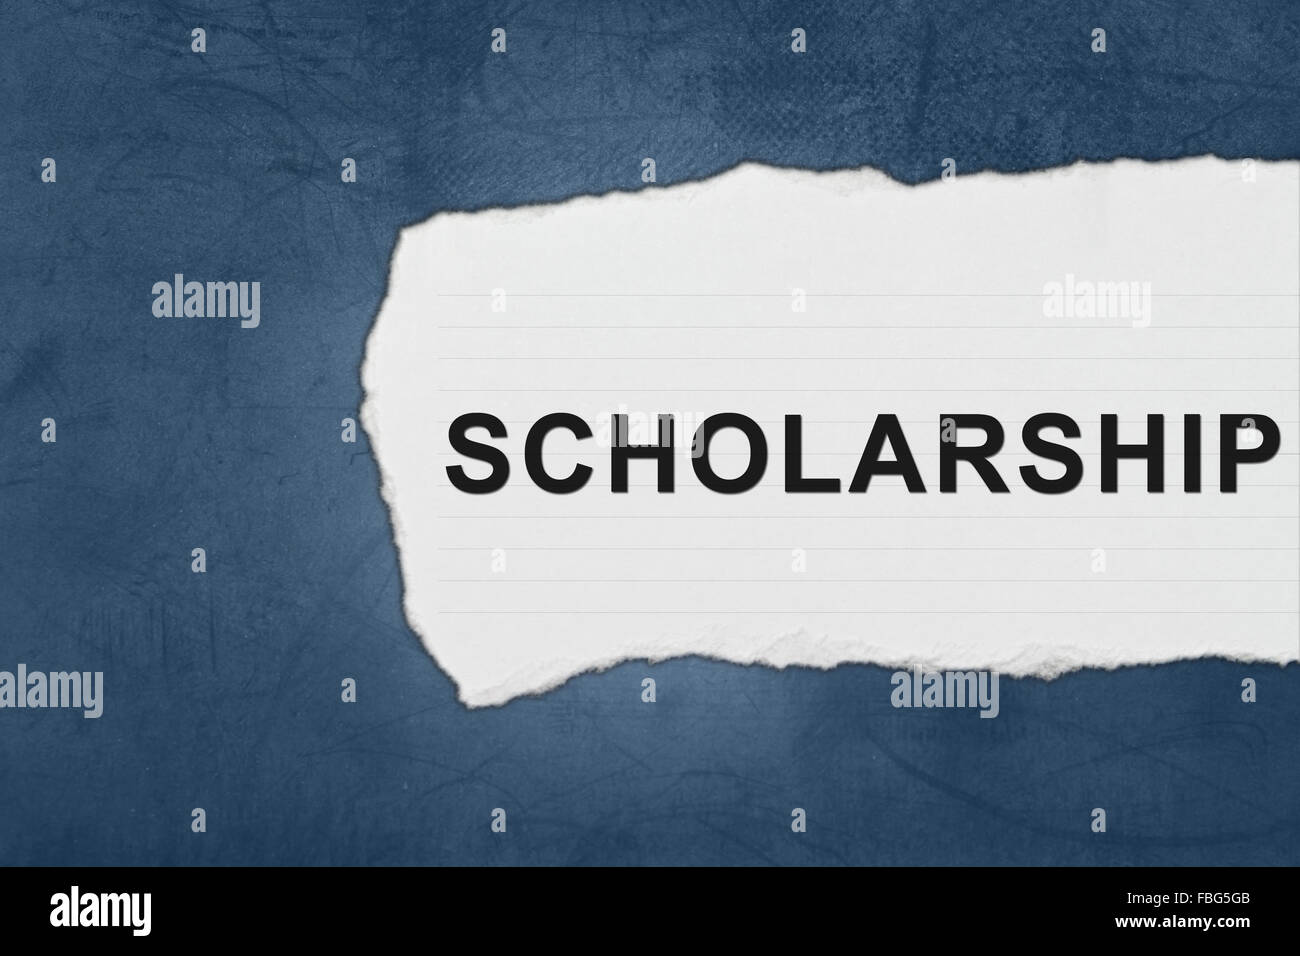 scholarship with white paper tears on blue texture - Stock Image